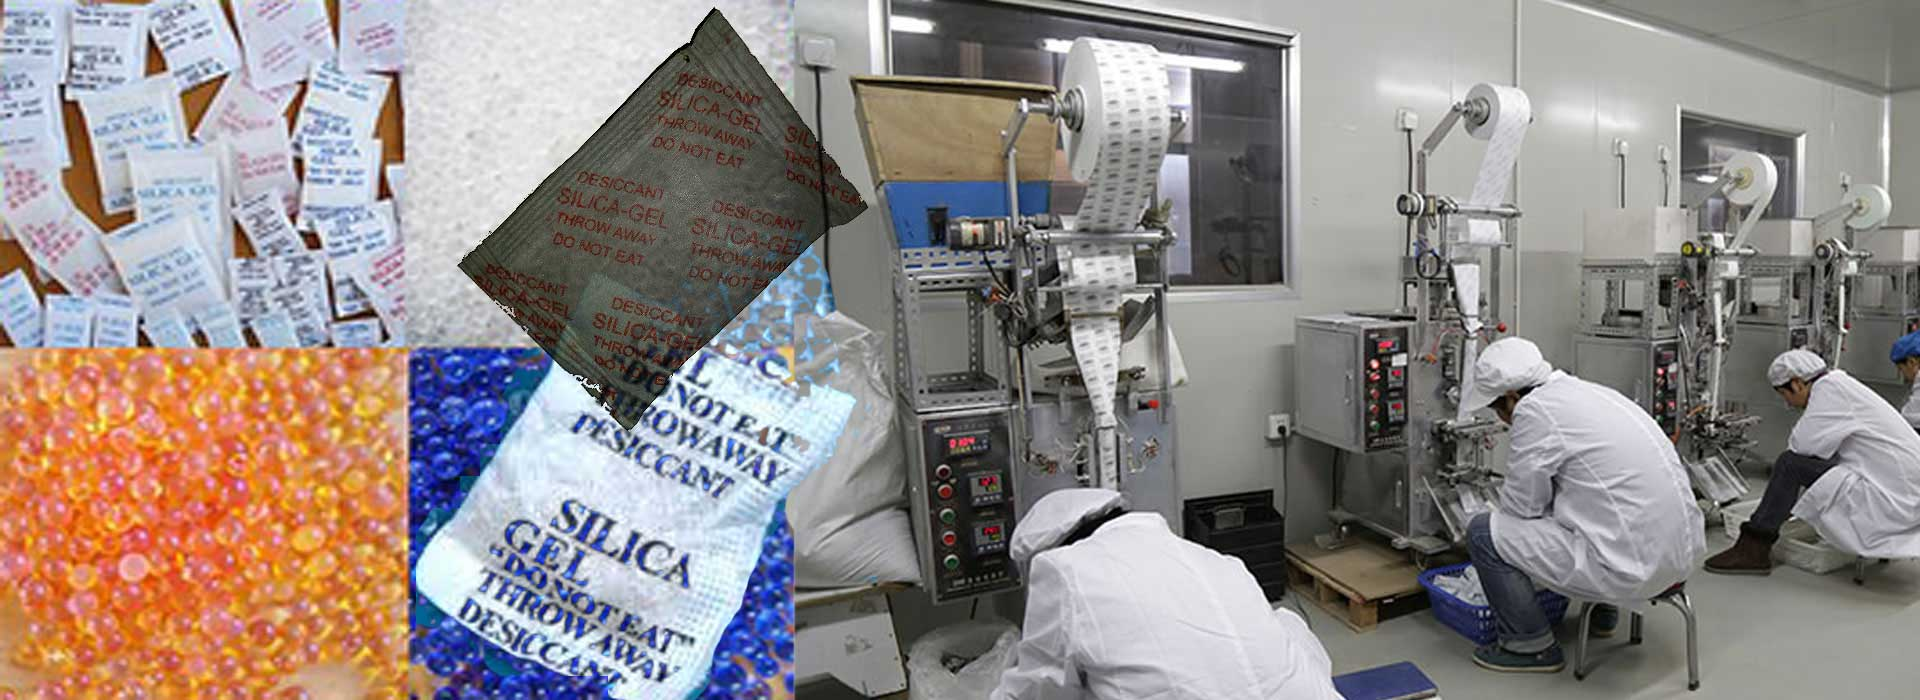 Silica Gel bags packets Manufacturer Silica-Gel Supplier, Desiccant silica gel sachet manufacturers Karachi